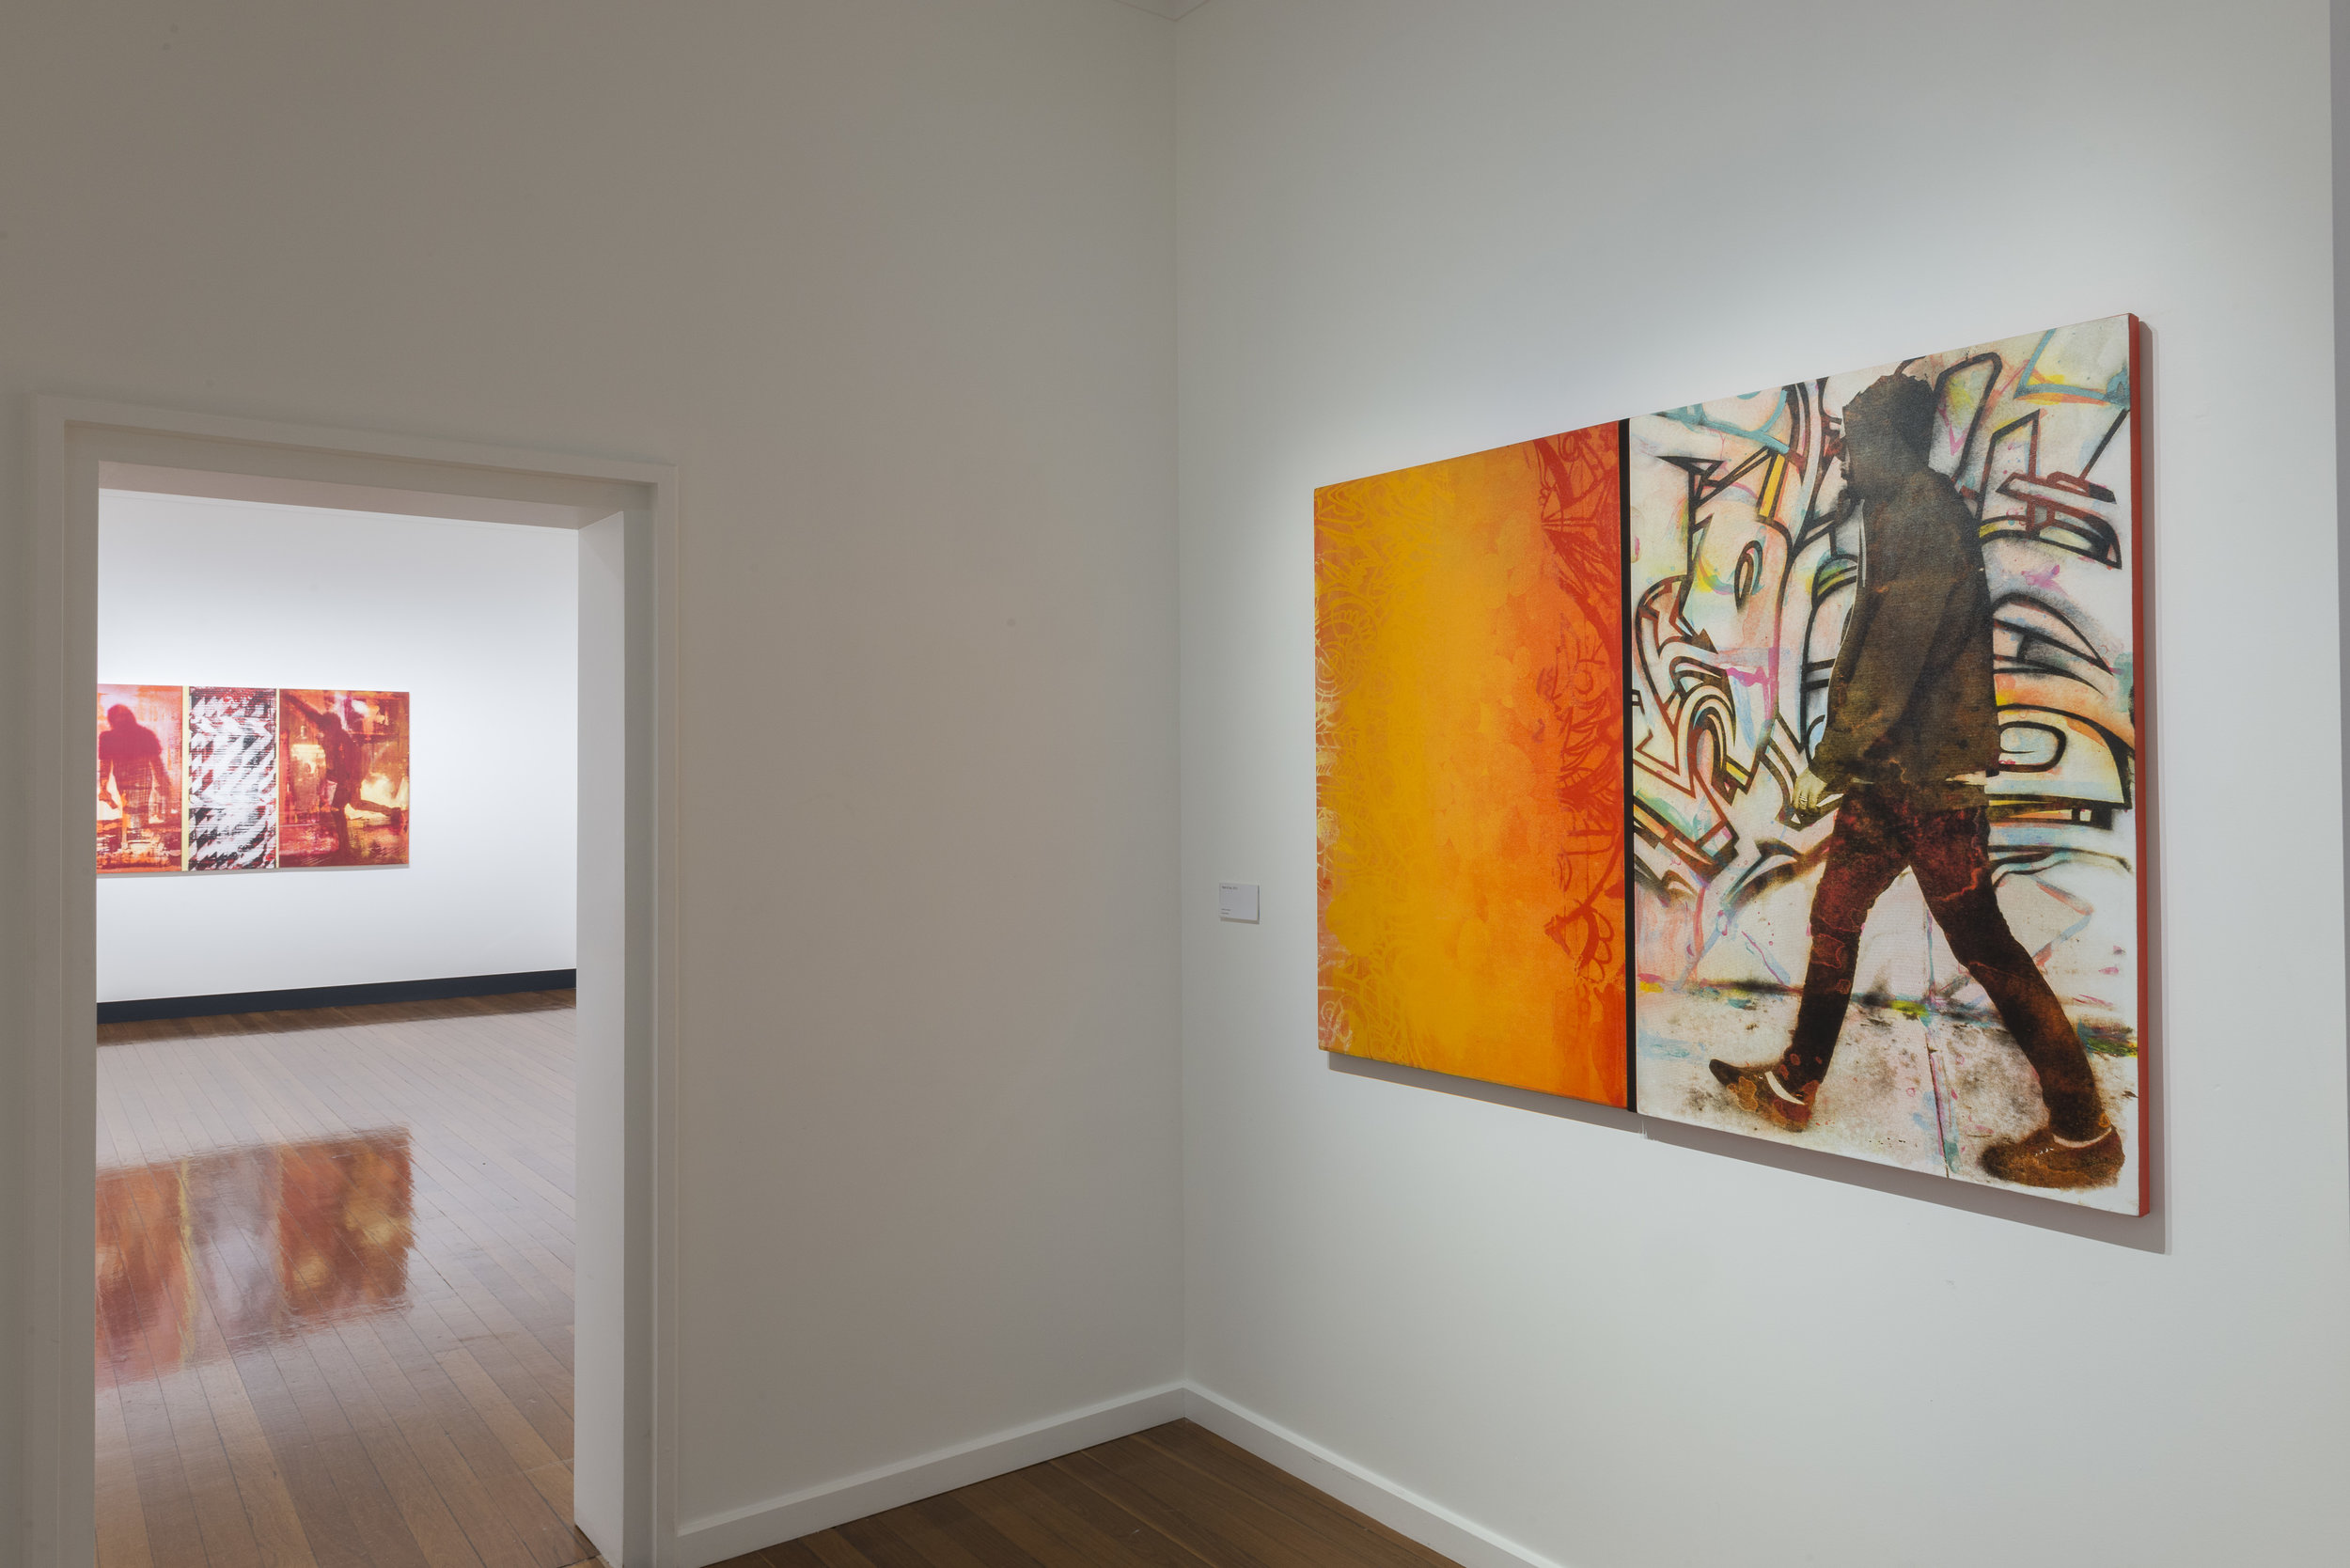 Robert Boynes: Modern Times , exhibition install view, ANU Drill Hall Gallery, Canberra, July 2017; photo: Rob Little, RLDI